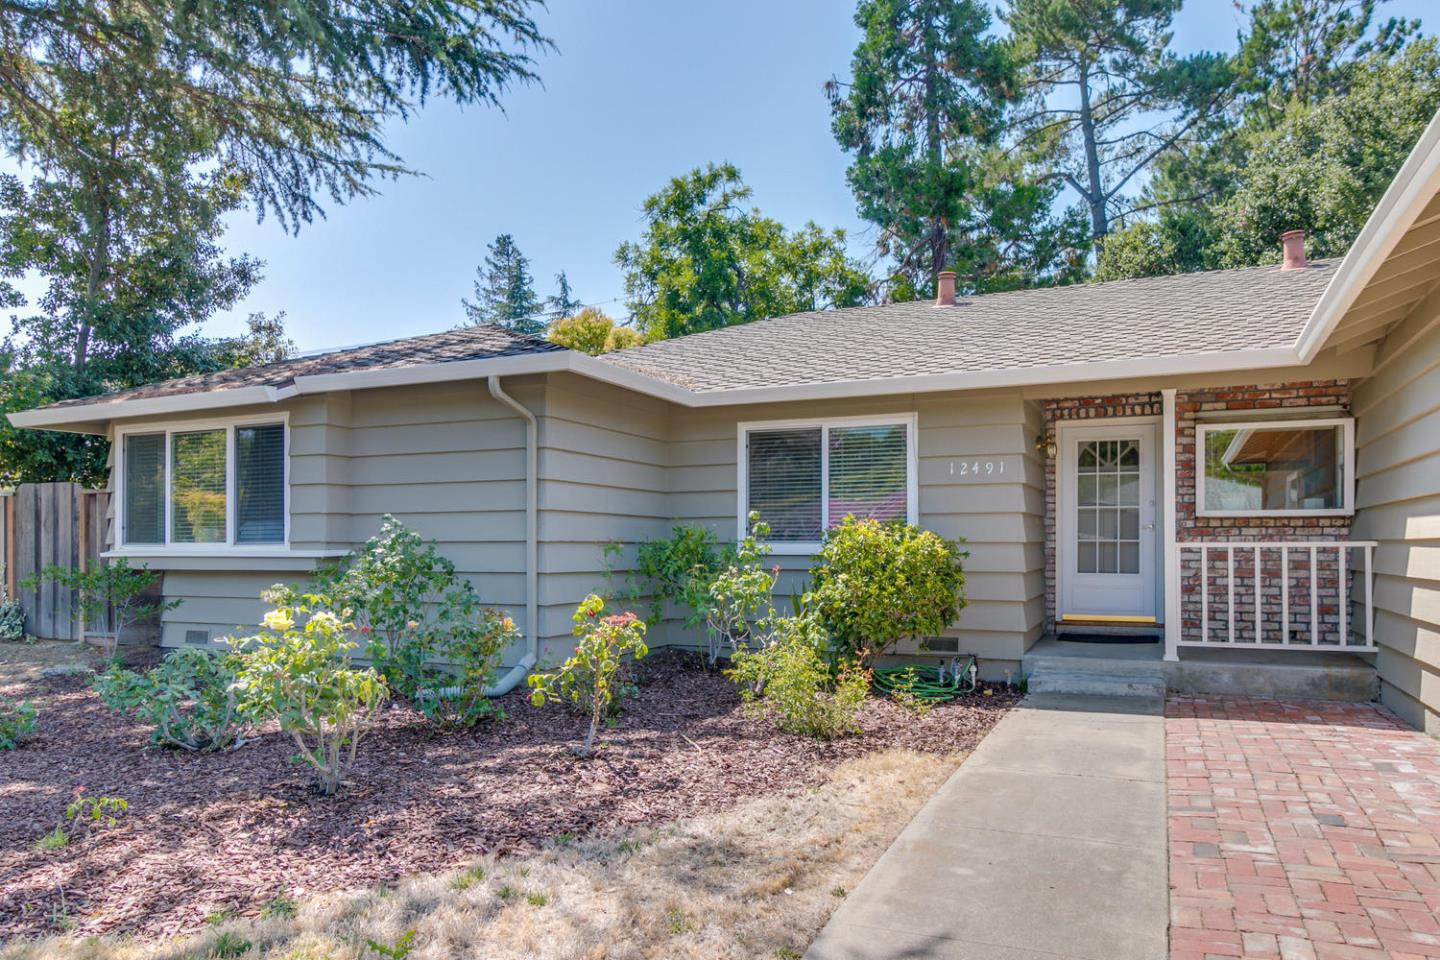 Detail Gallery Image 1 of 1 For 12491 Palmtag Dr, Saratoga, CA 95070 - 4 Beds   2/1 Baths